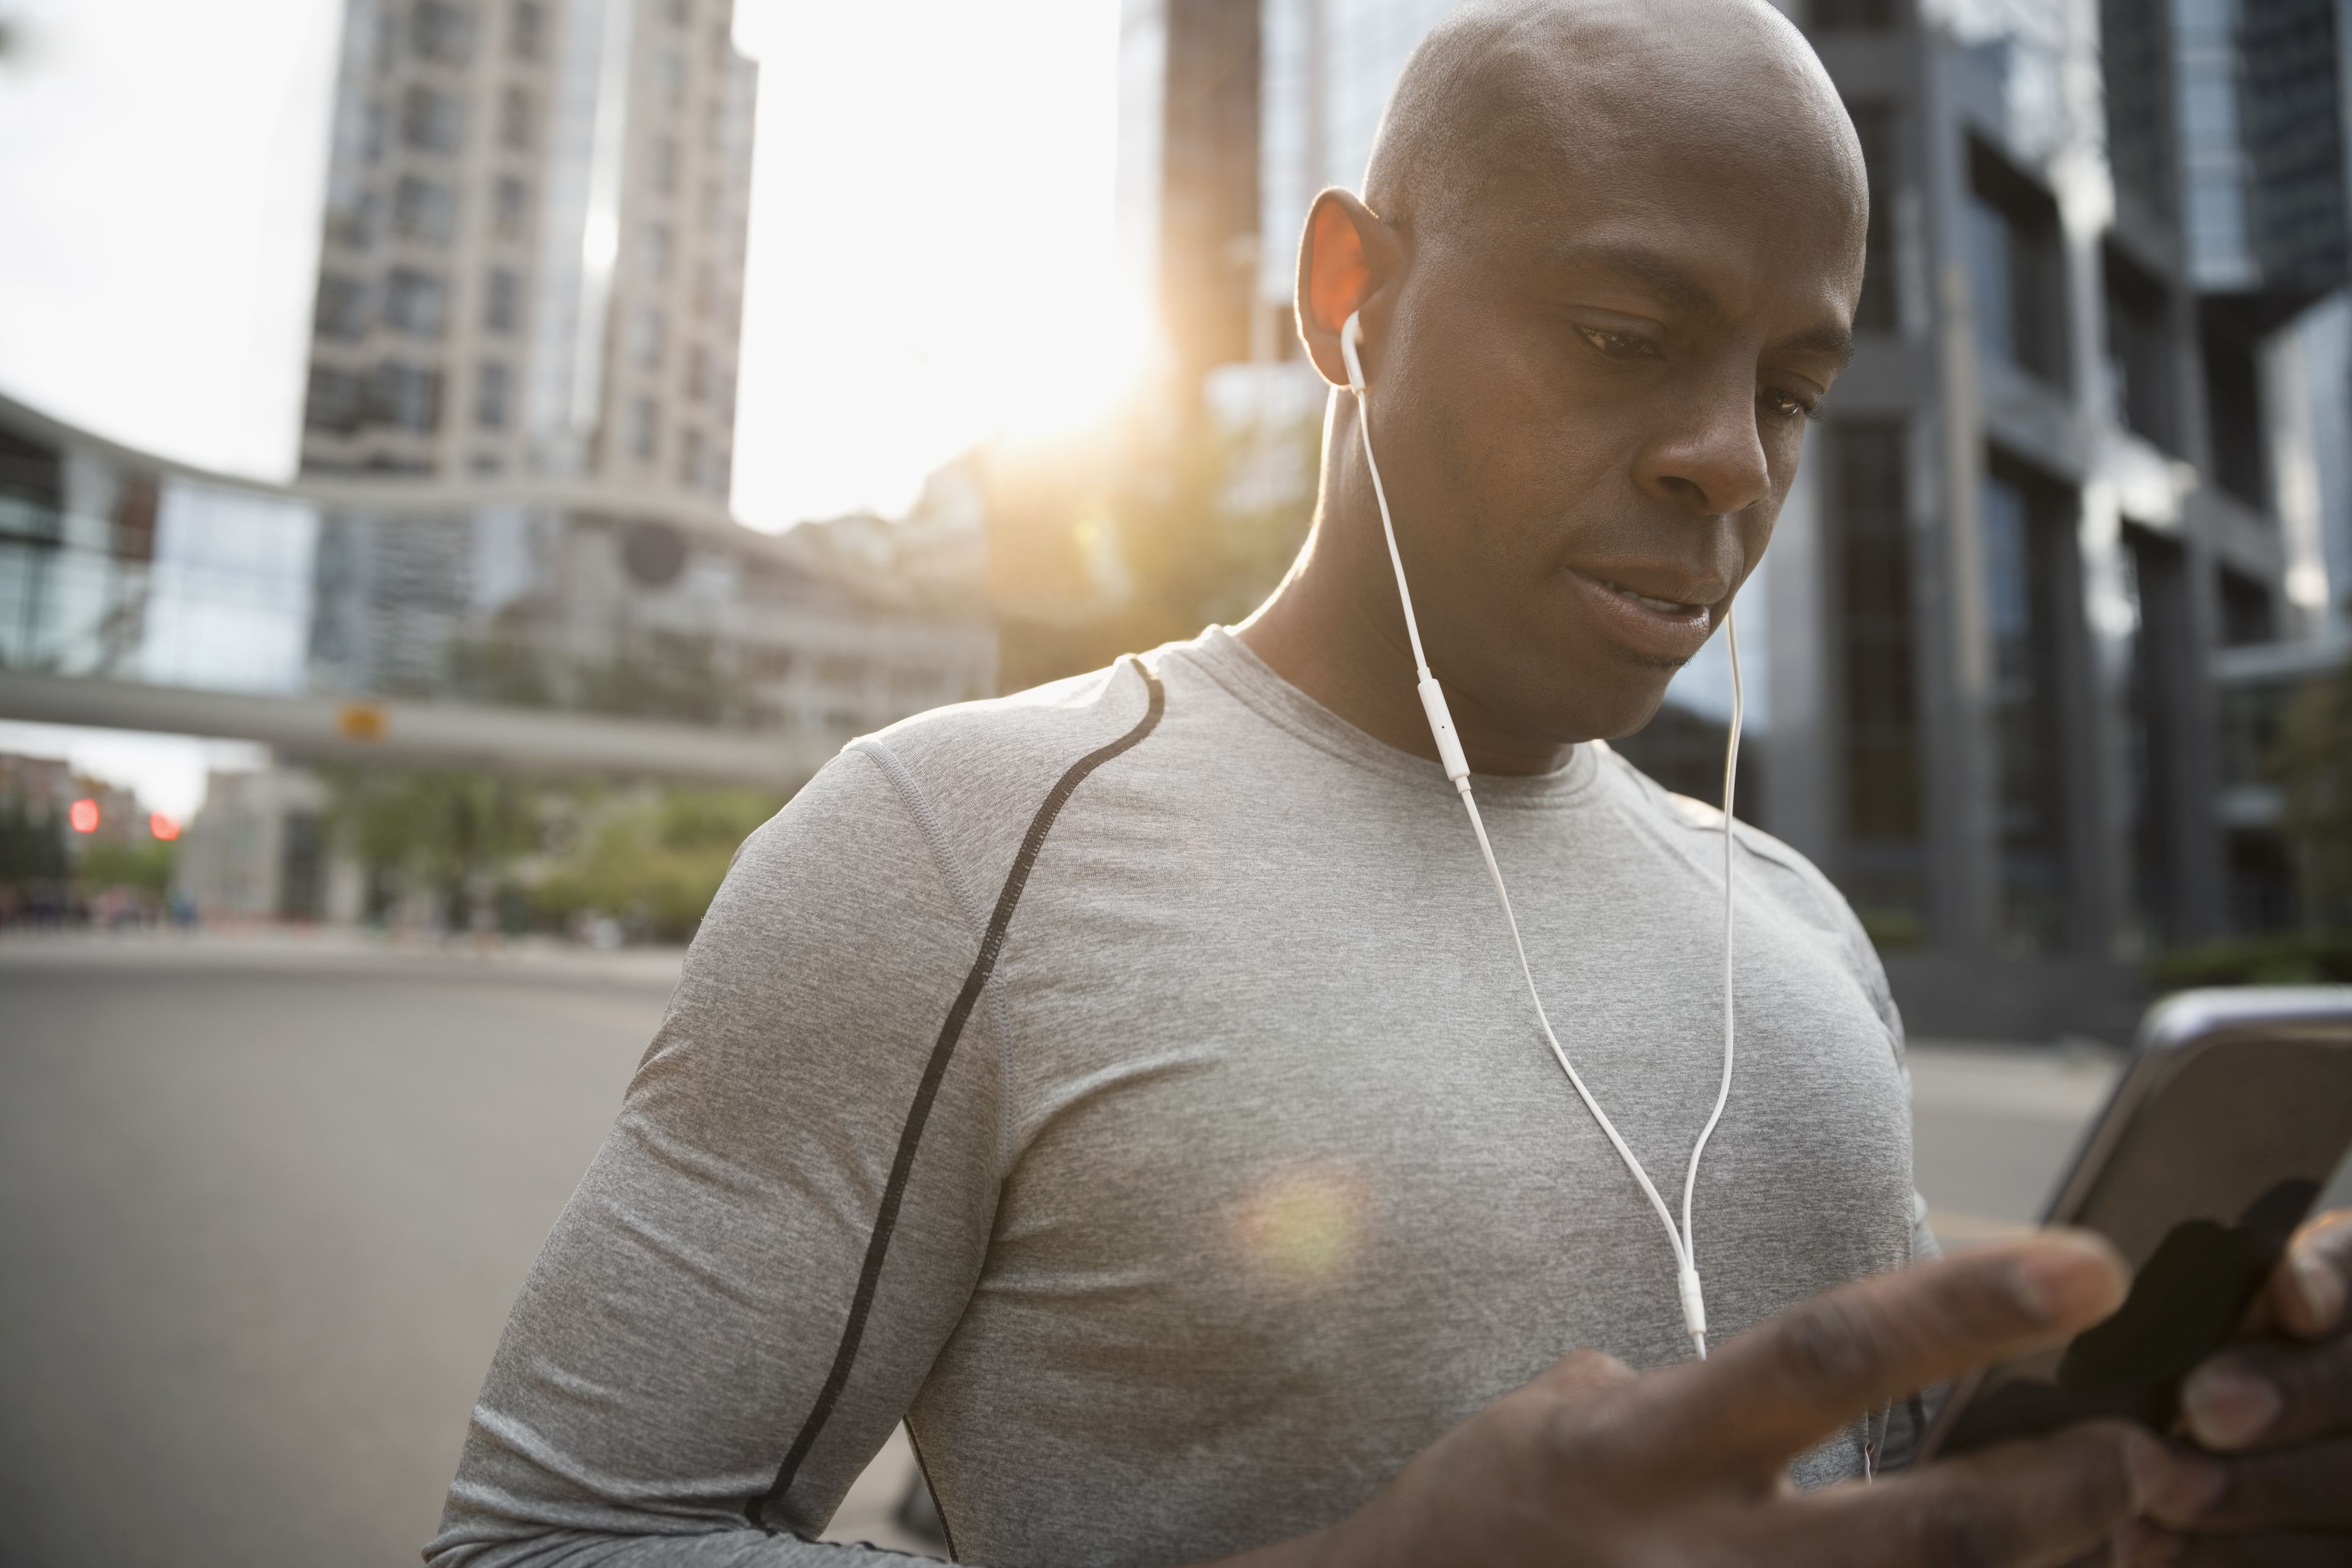 Male runner using smart phone, listening to music with earbud headphones on urban street